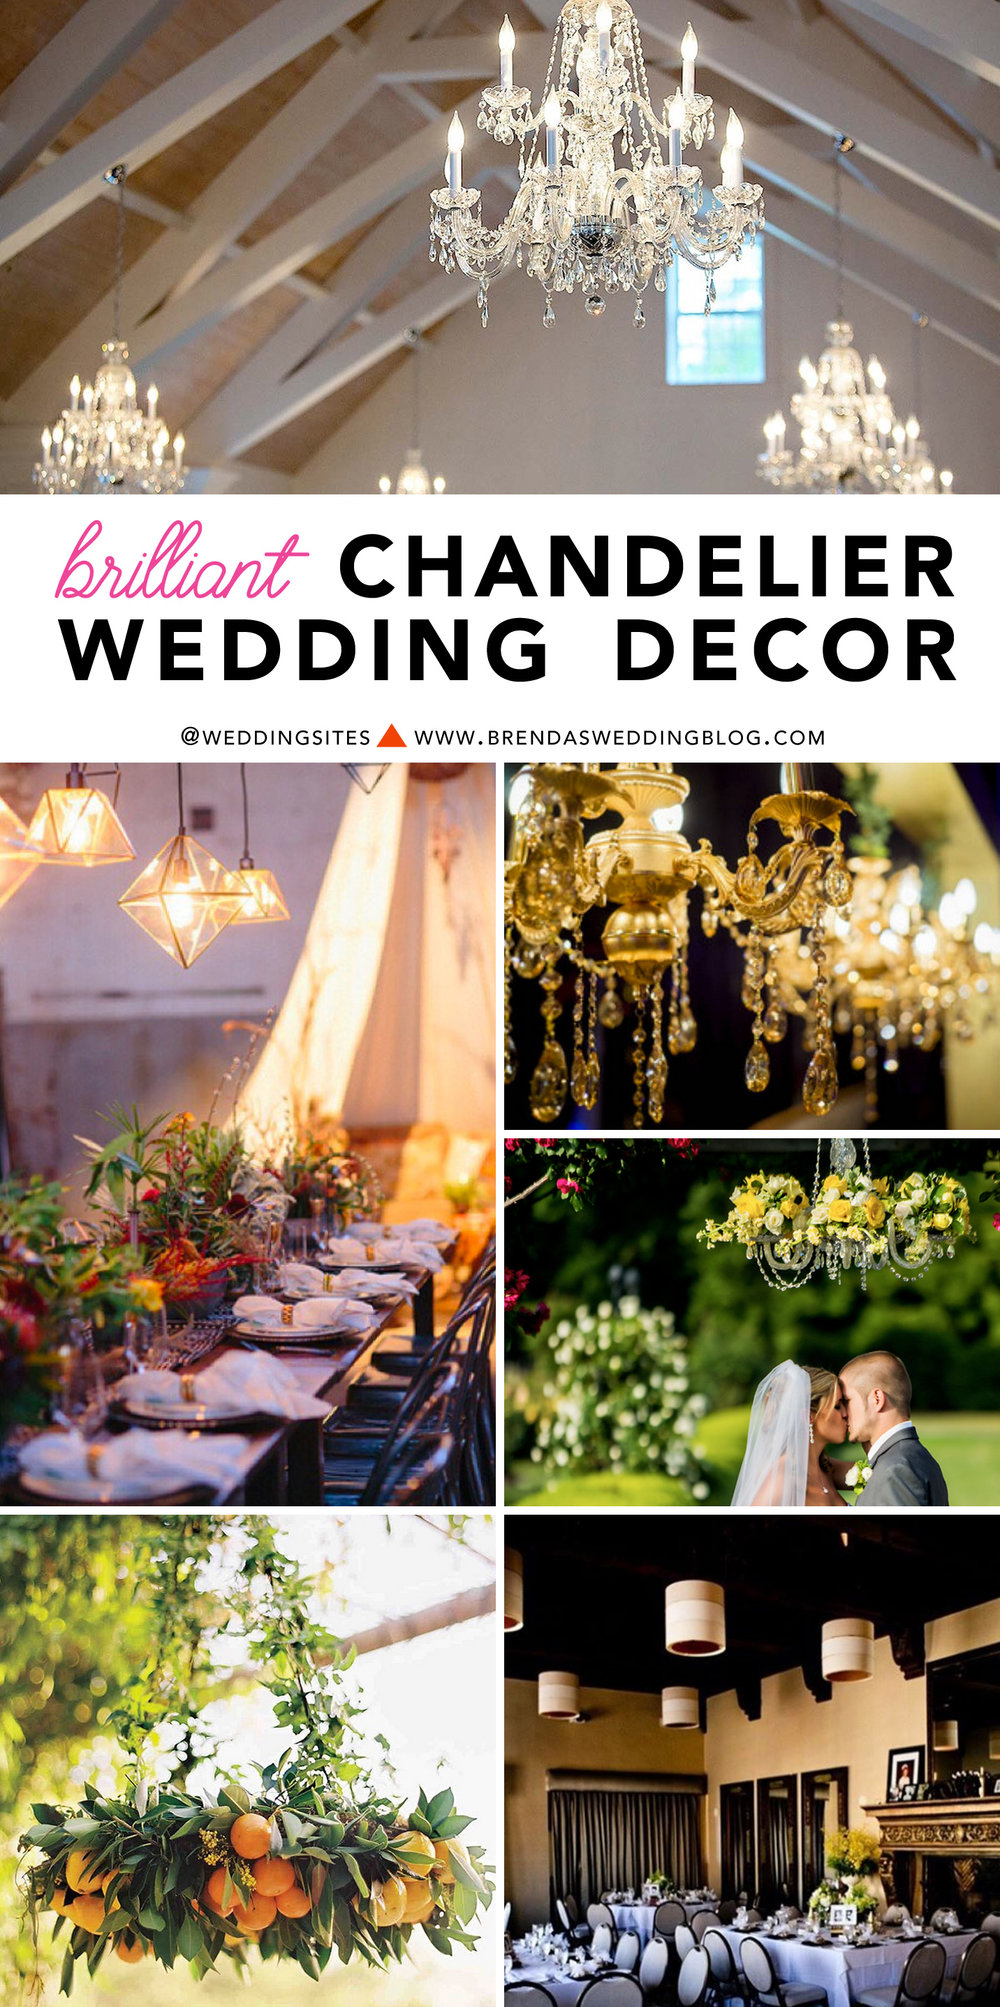 Brilliant Wedding Trend : Chandelier Wedding Decor Inspiration / as seen on www.BrendasWeddingBlog.com - click to see chandeliers for weddings from modern to geometric to classic with lots of bling